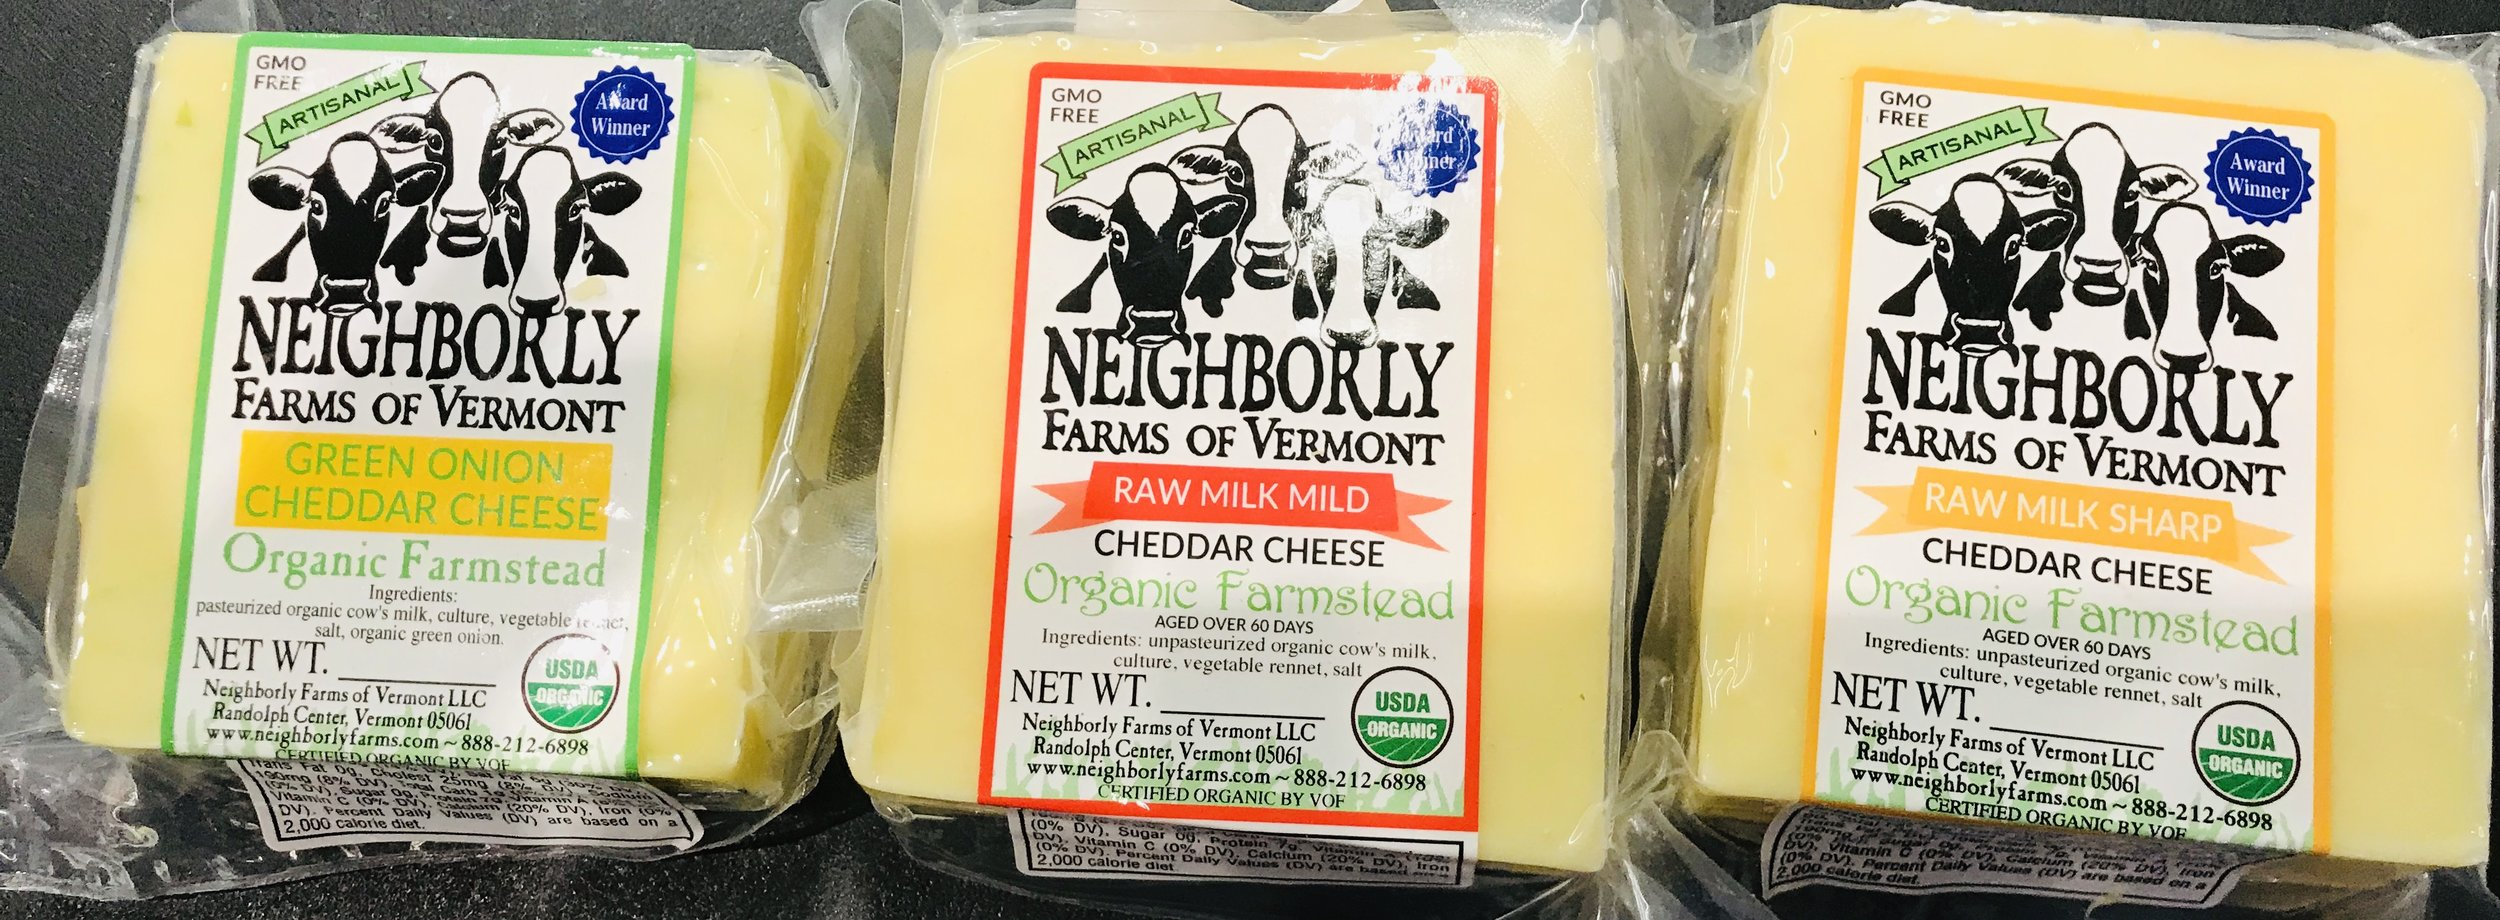 Neighborly Farms of Vermont organic cheese is now available at Russo's!